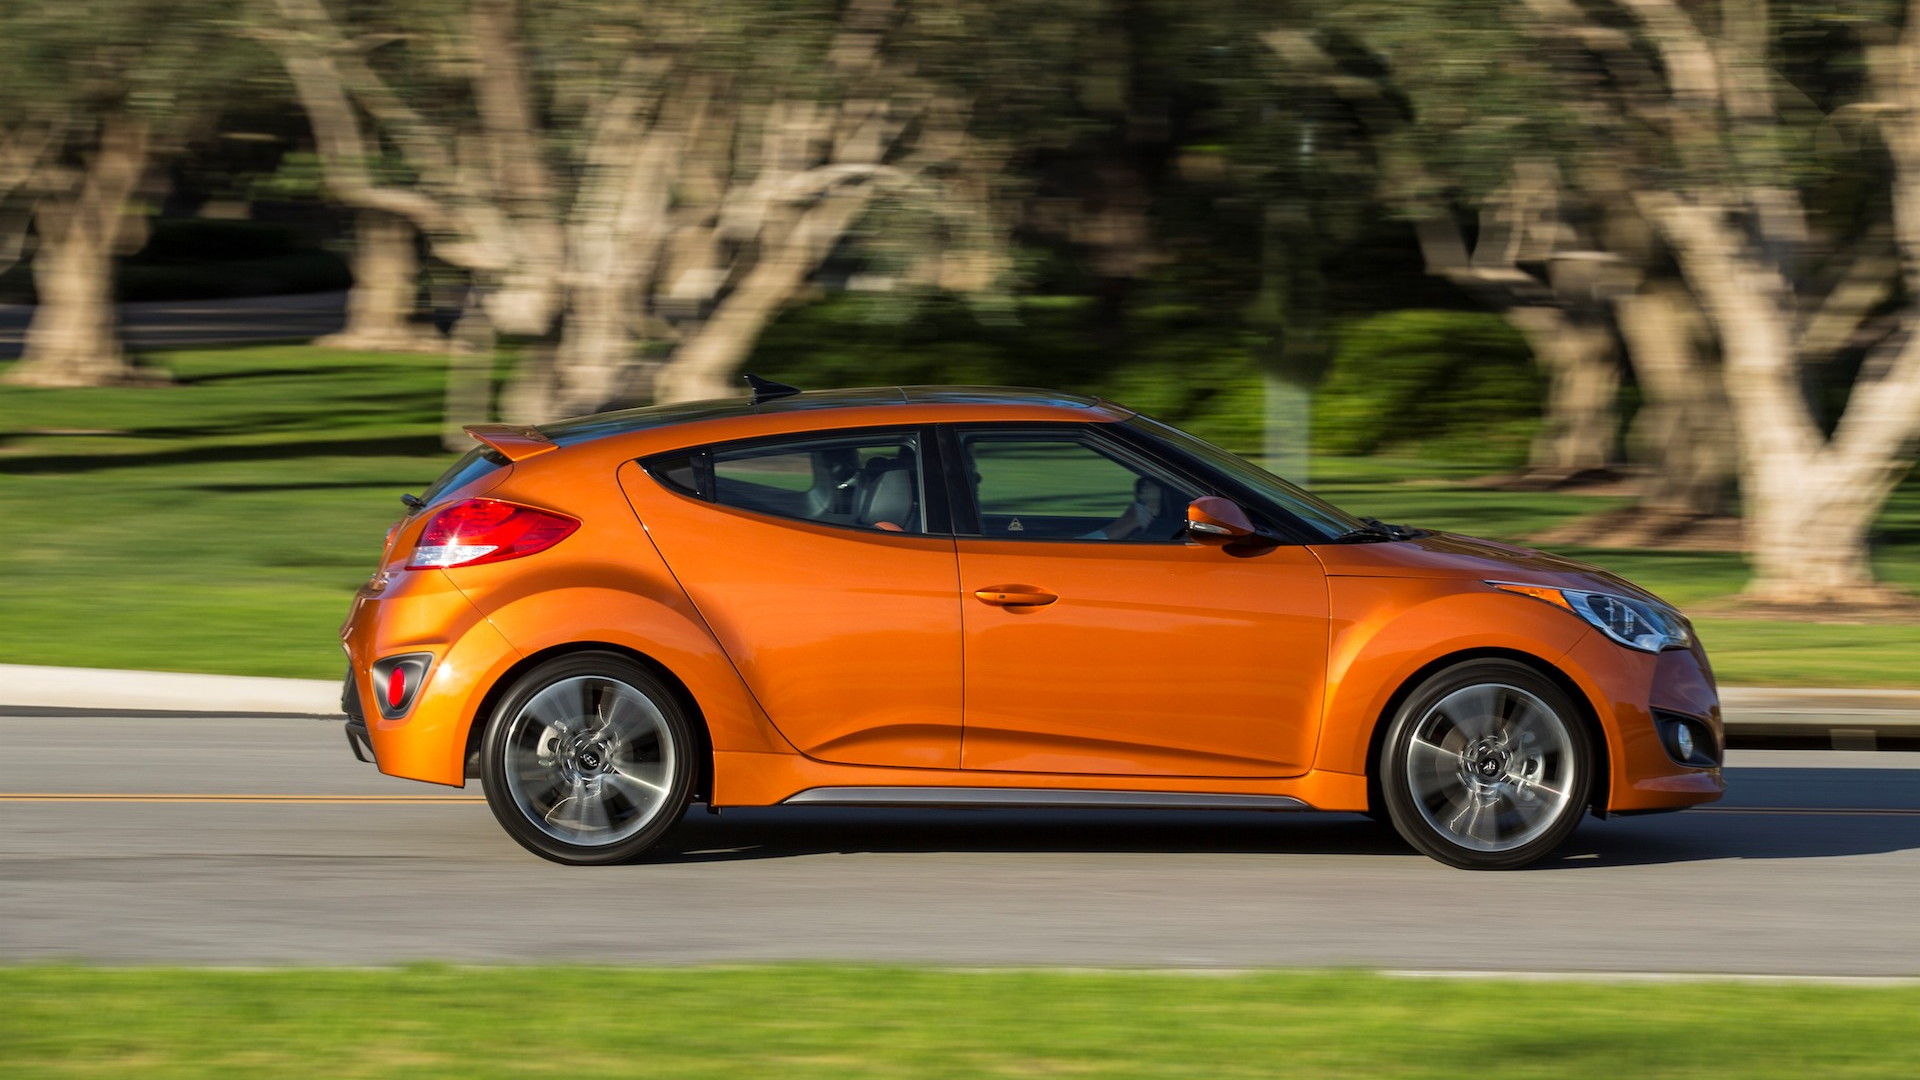 Le Meilleur 2017 Hyundai Veloster Gets Value Packed Edition Ce Mois Ci